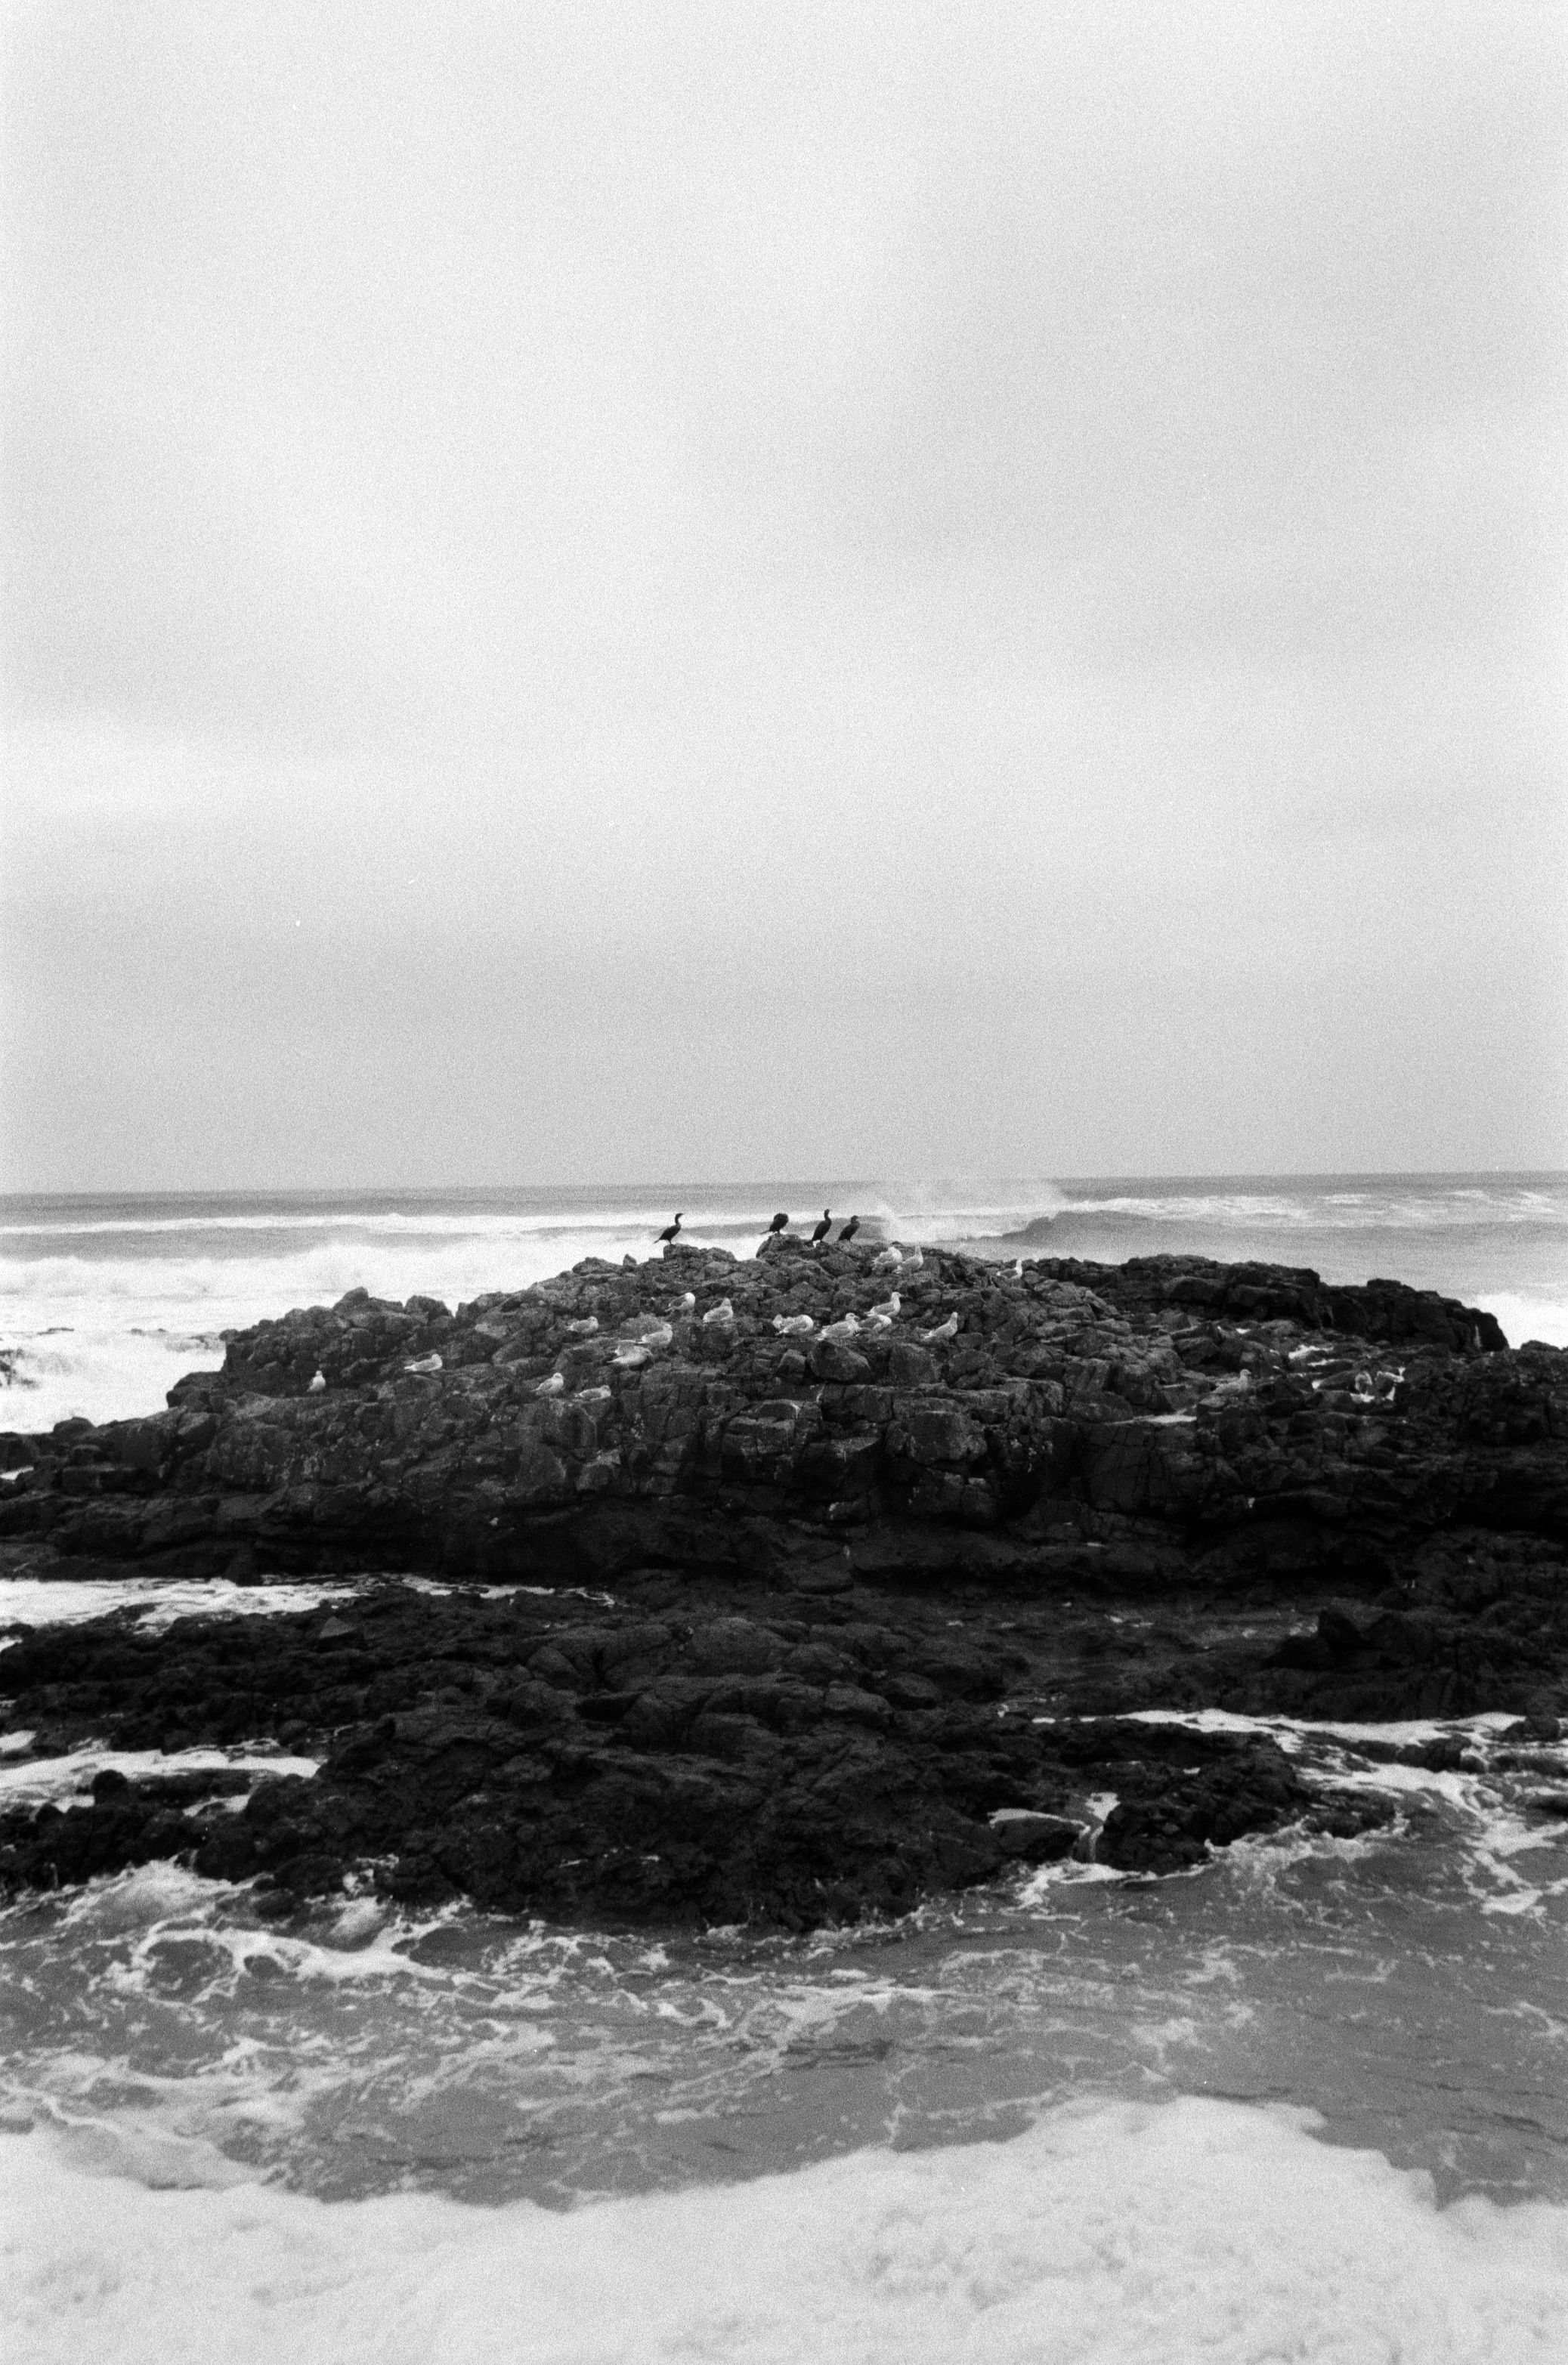 Ilford_Roll01_PNW_2019_003.jpg